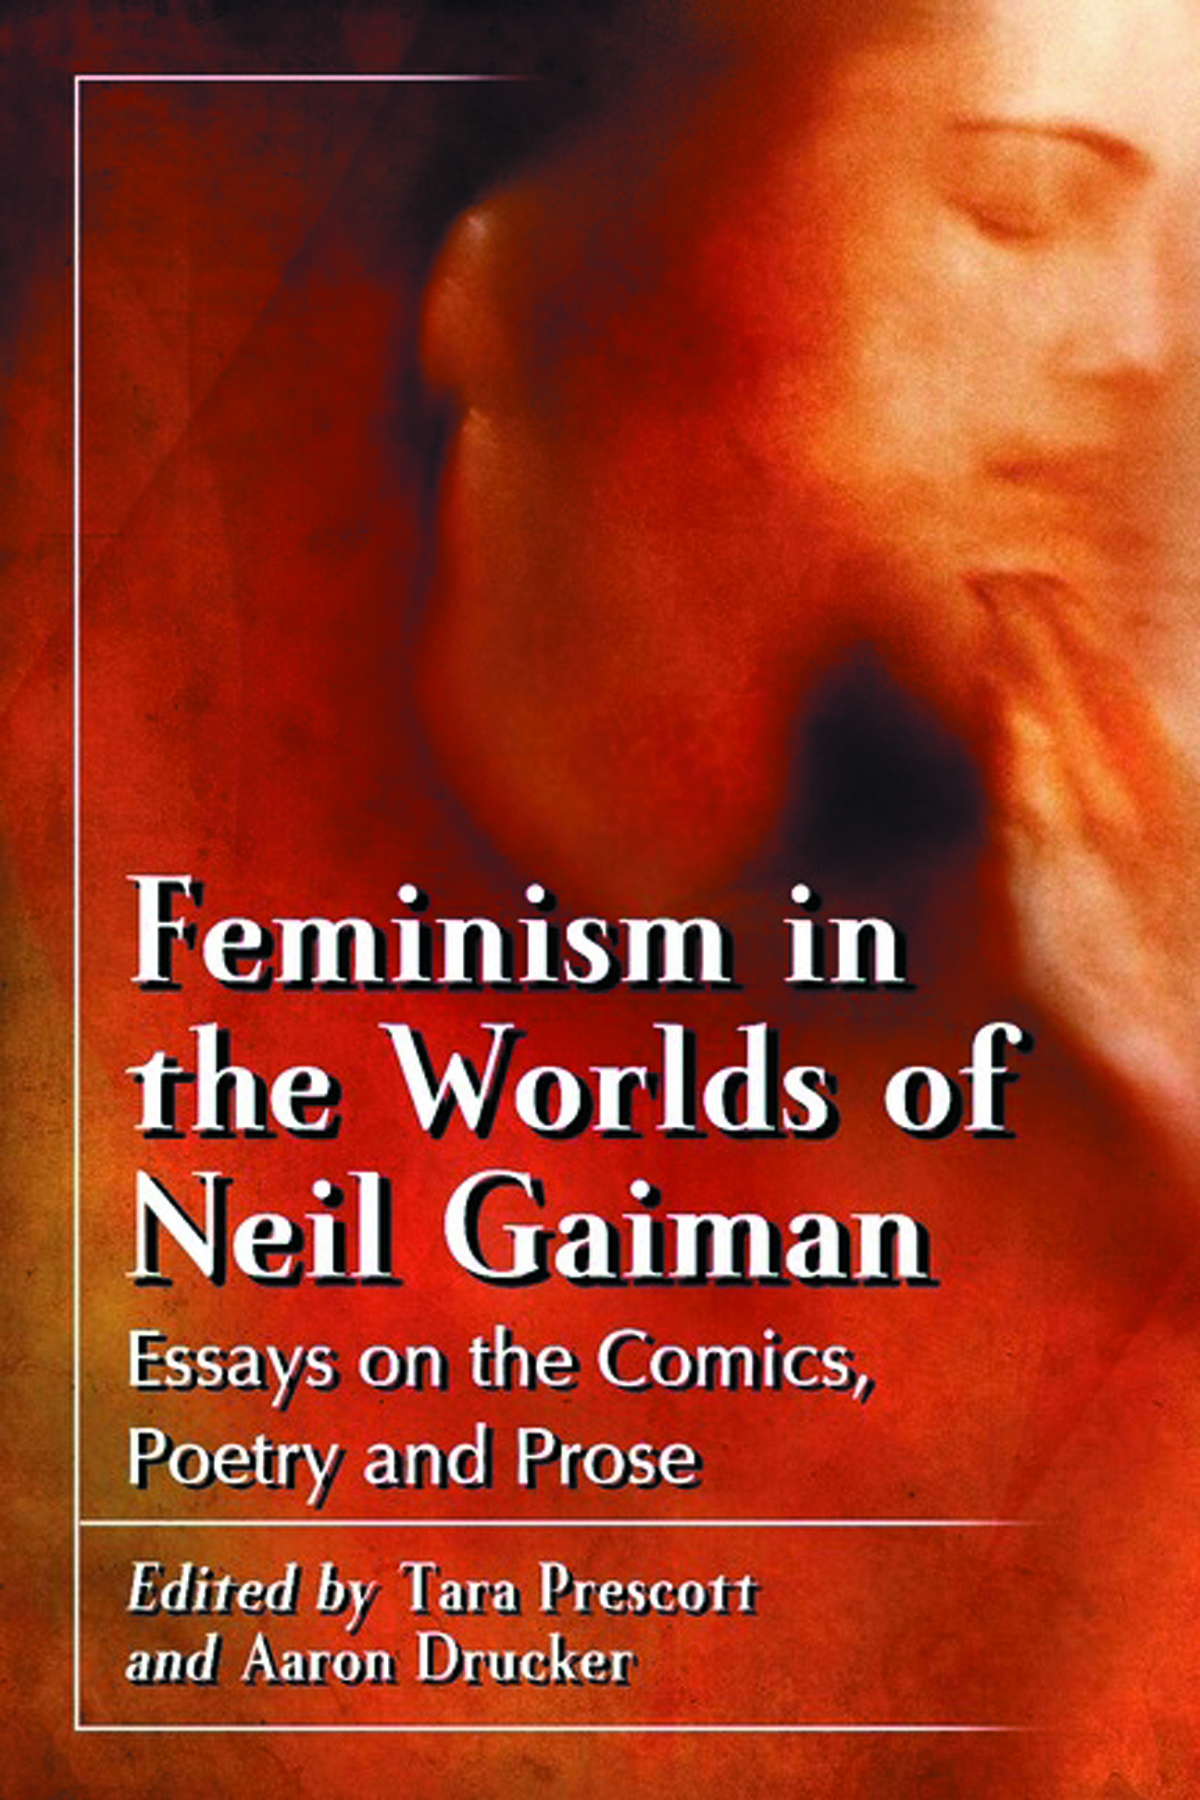 FEMINISM IN WORLDS OF NEIL GAIMAN SC